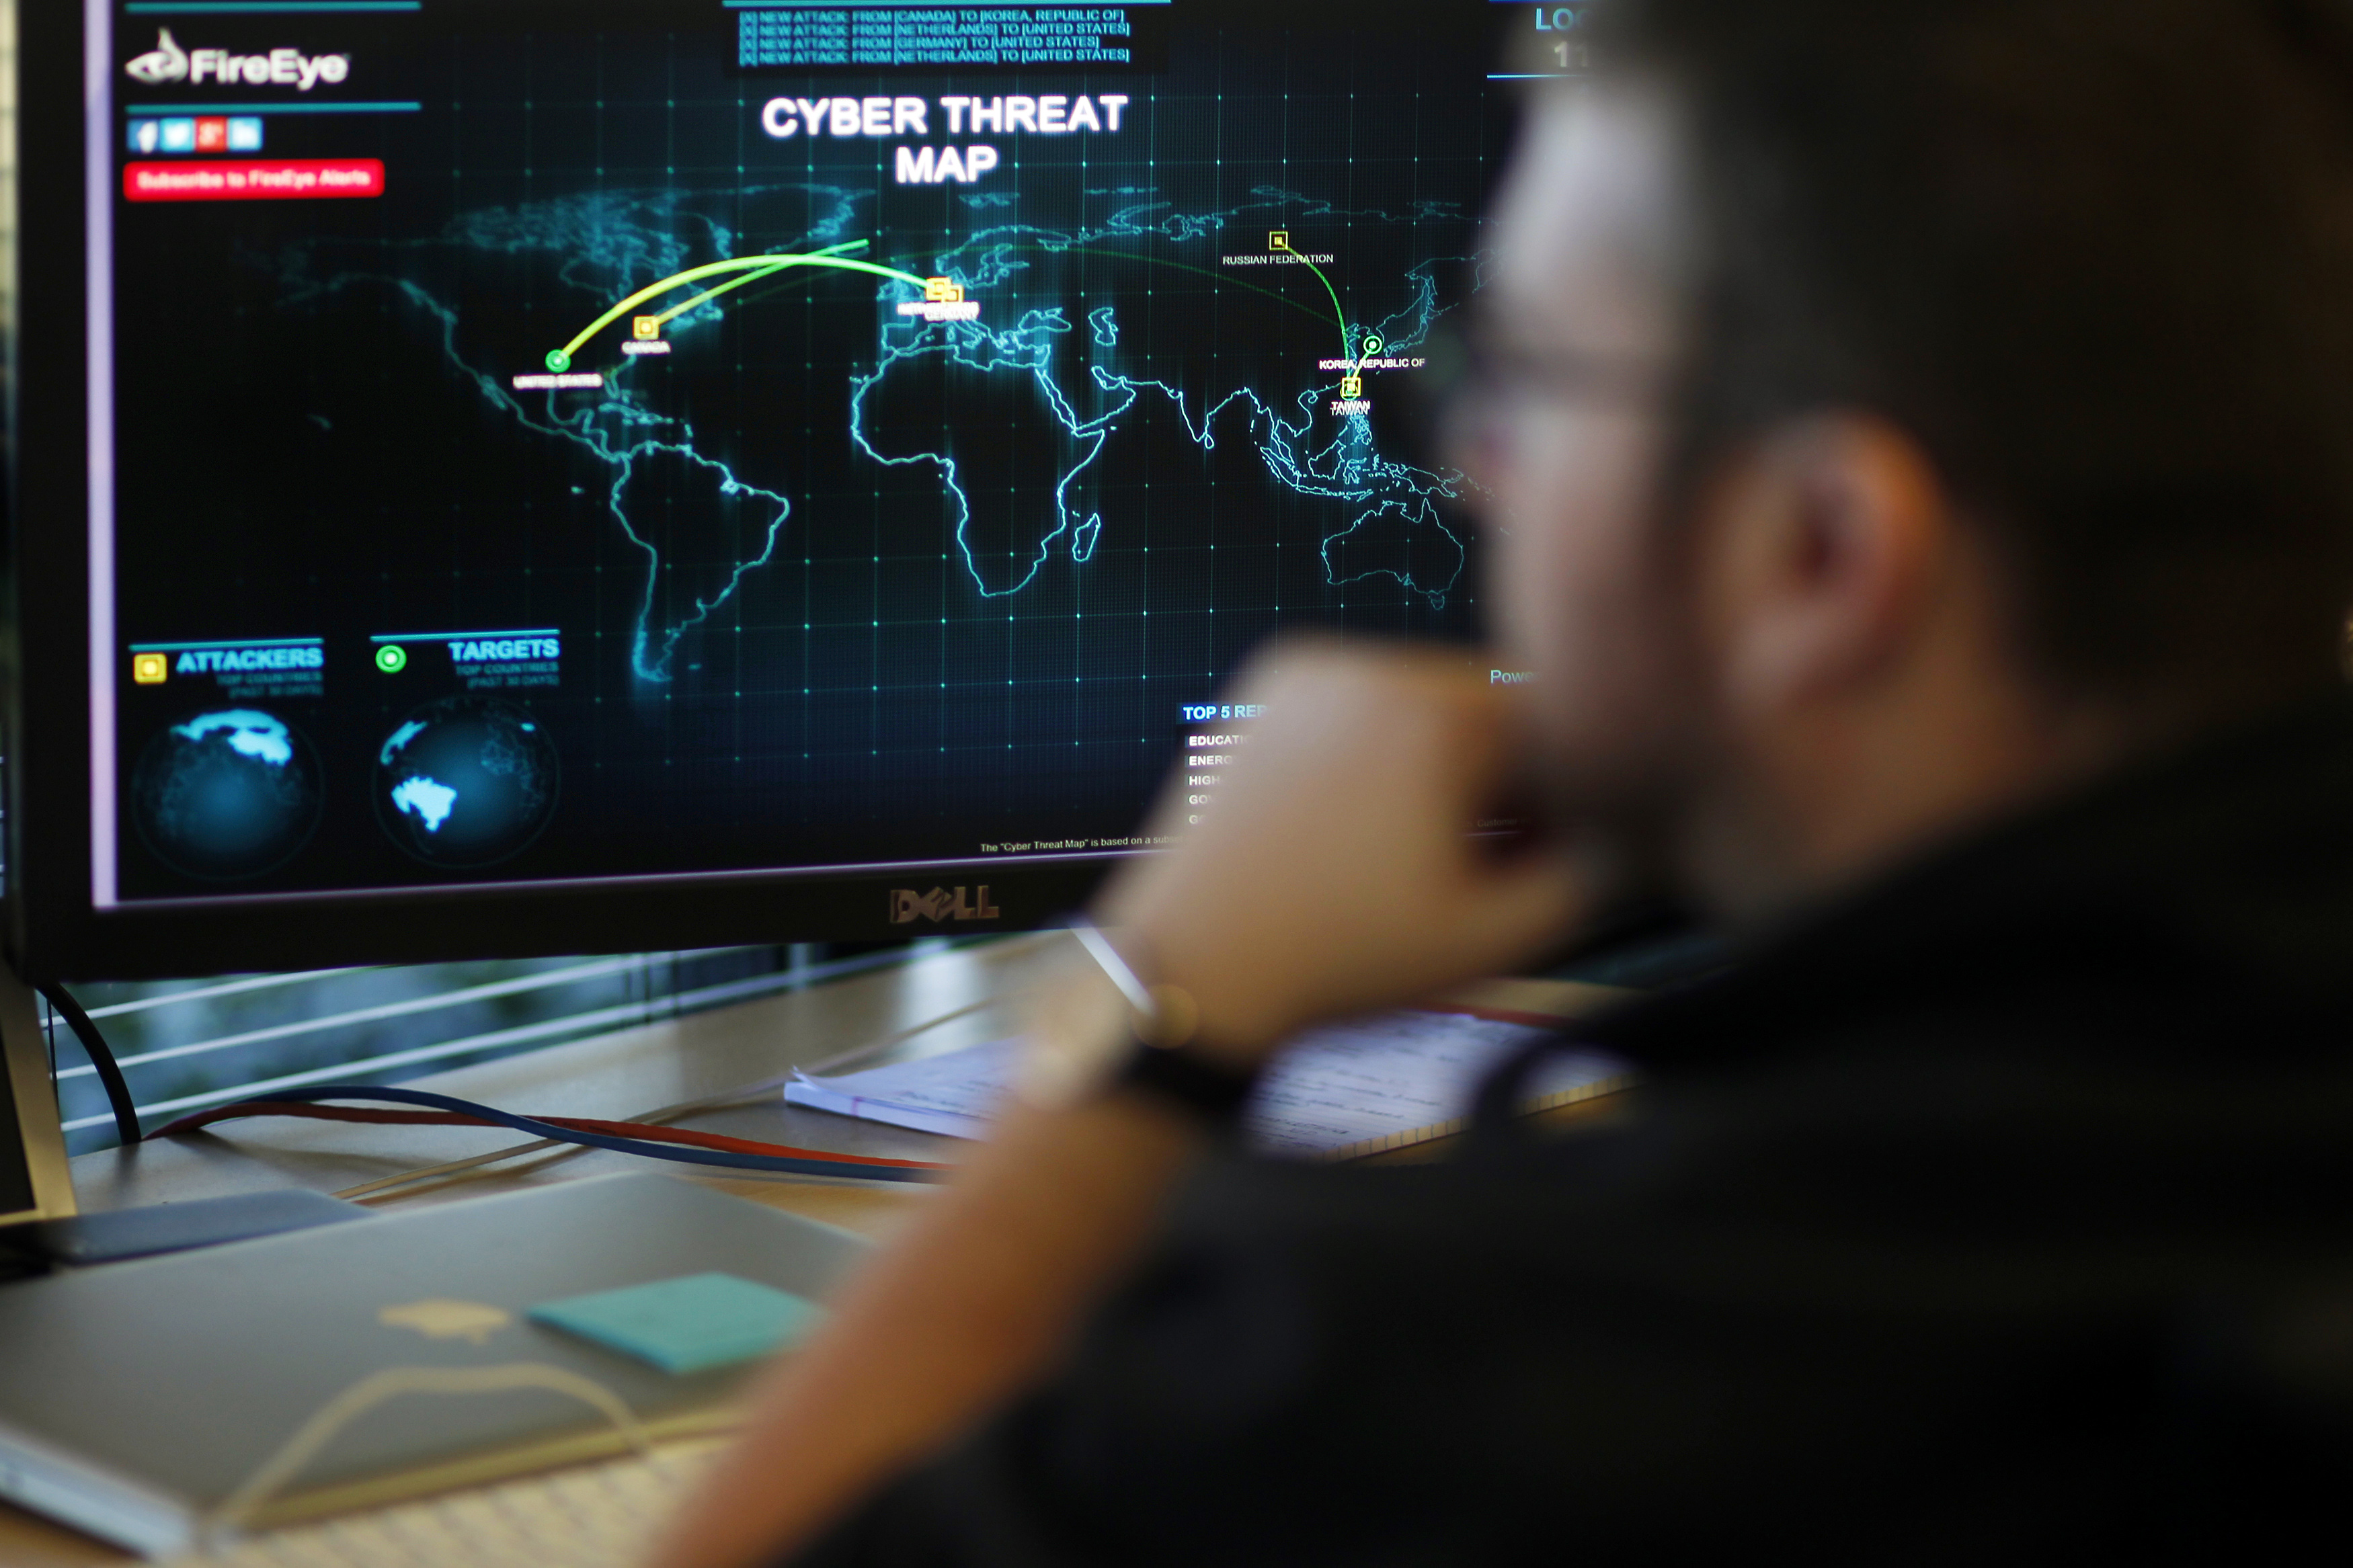 A FireEye information analyst works in front of a screen showing a near real-time map tracking cyber threats at the FireEye office in Milpitas, California, December 29, 2014. FireEye is the security firm hired by Sony to investigate last month's cyberattack against Sony Pictures. Picture taken December 29.     REUTERS/Beck Diefenbach (UNITED STATES - Tags: BUSINESS SCIENCE TECHNOLOGY CRIME LAW)